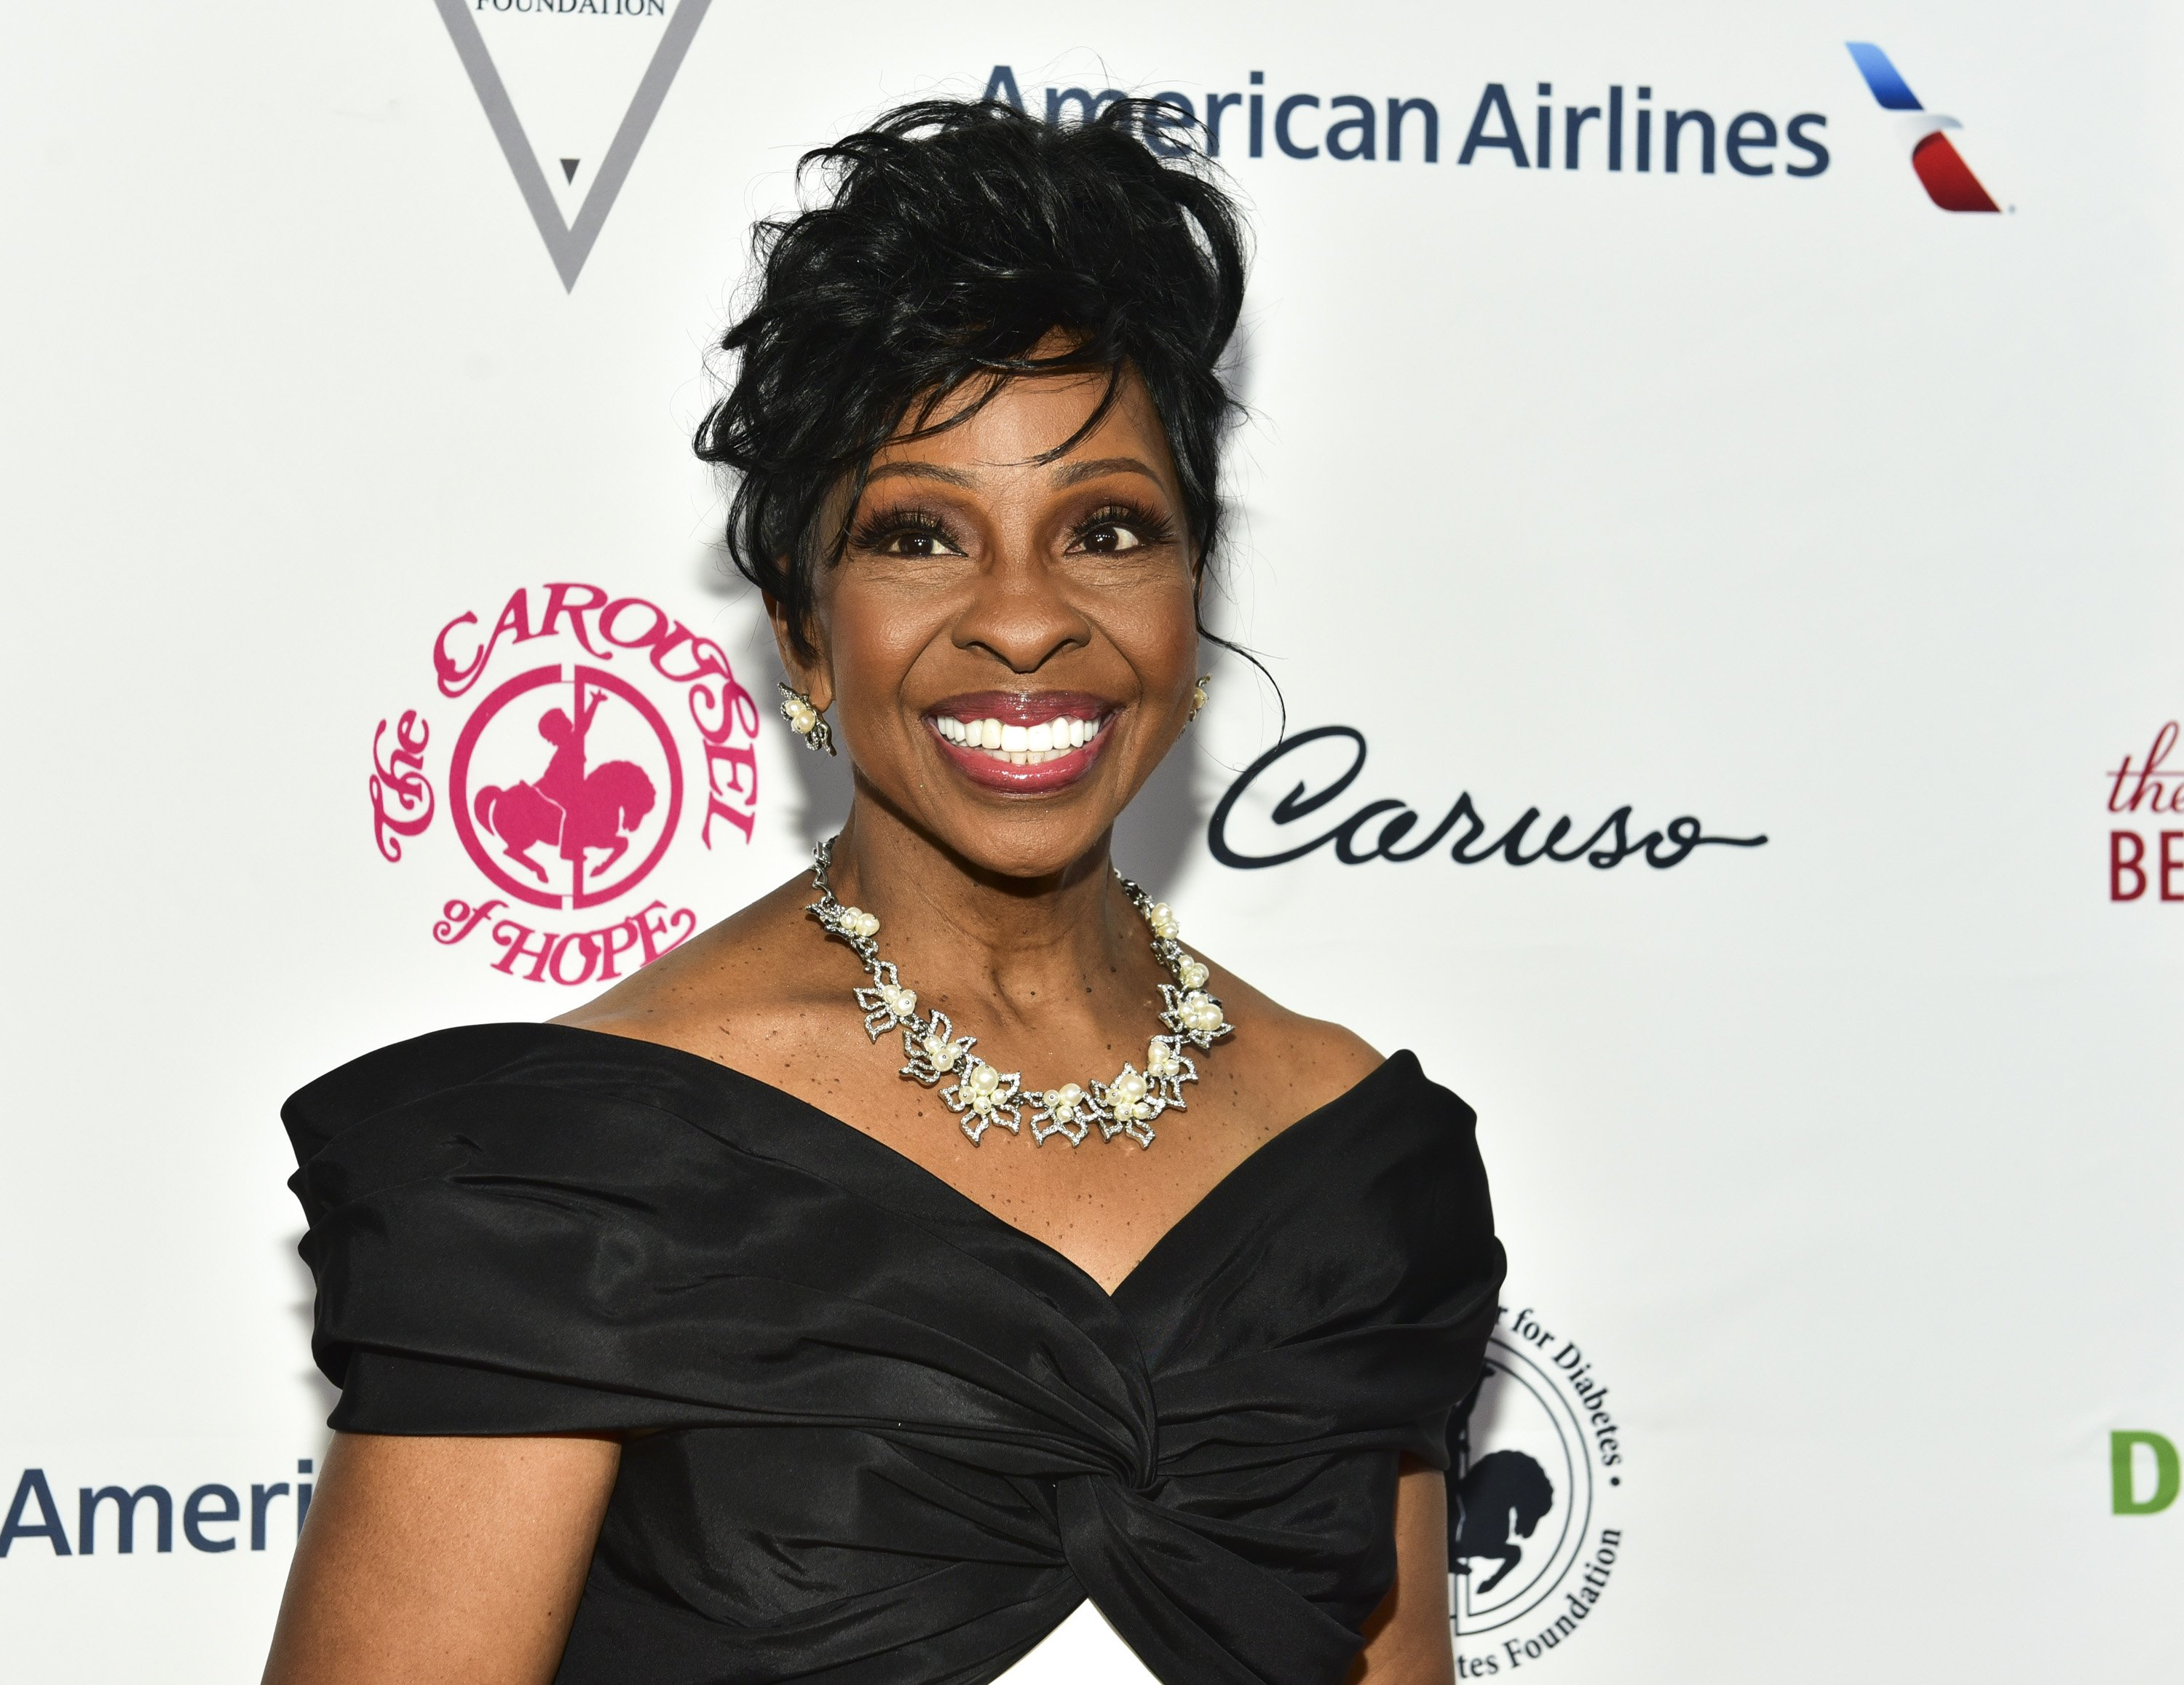 Gladys Knight at the Carousel of Hope Ball on Oct. 6, 2018 in California | Photo: Getty Images